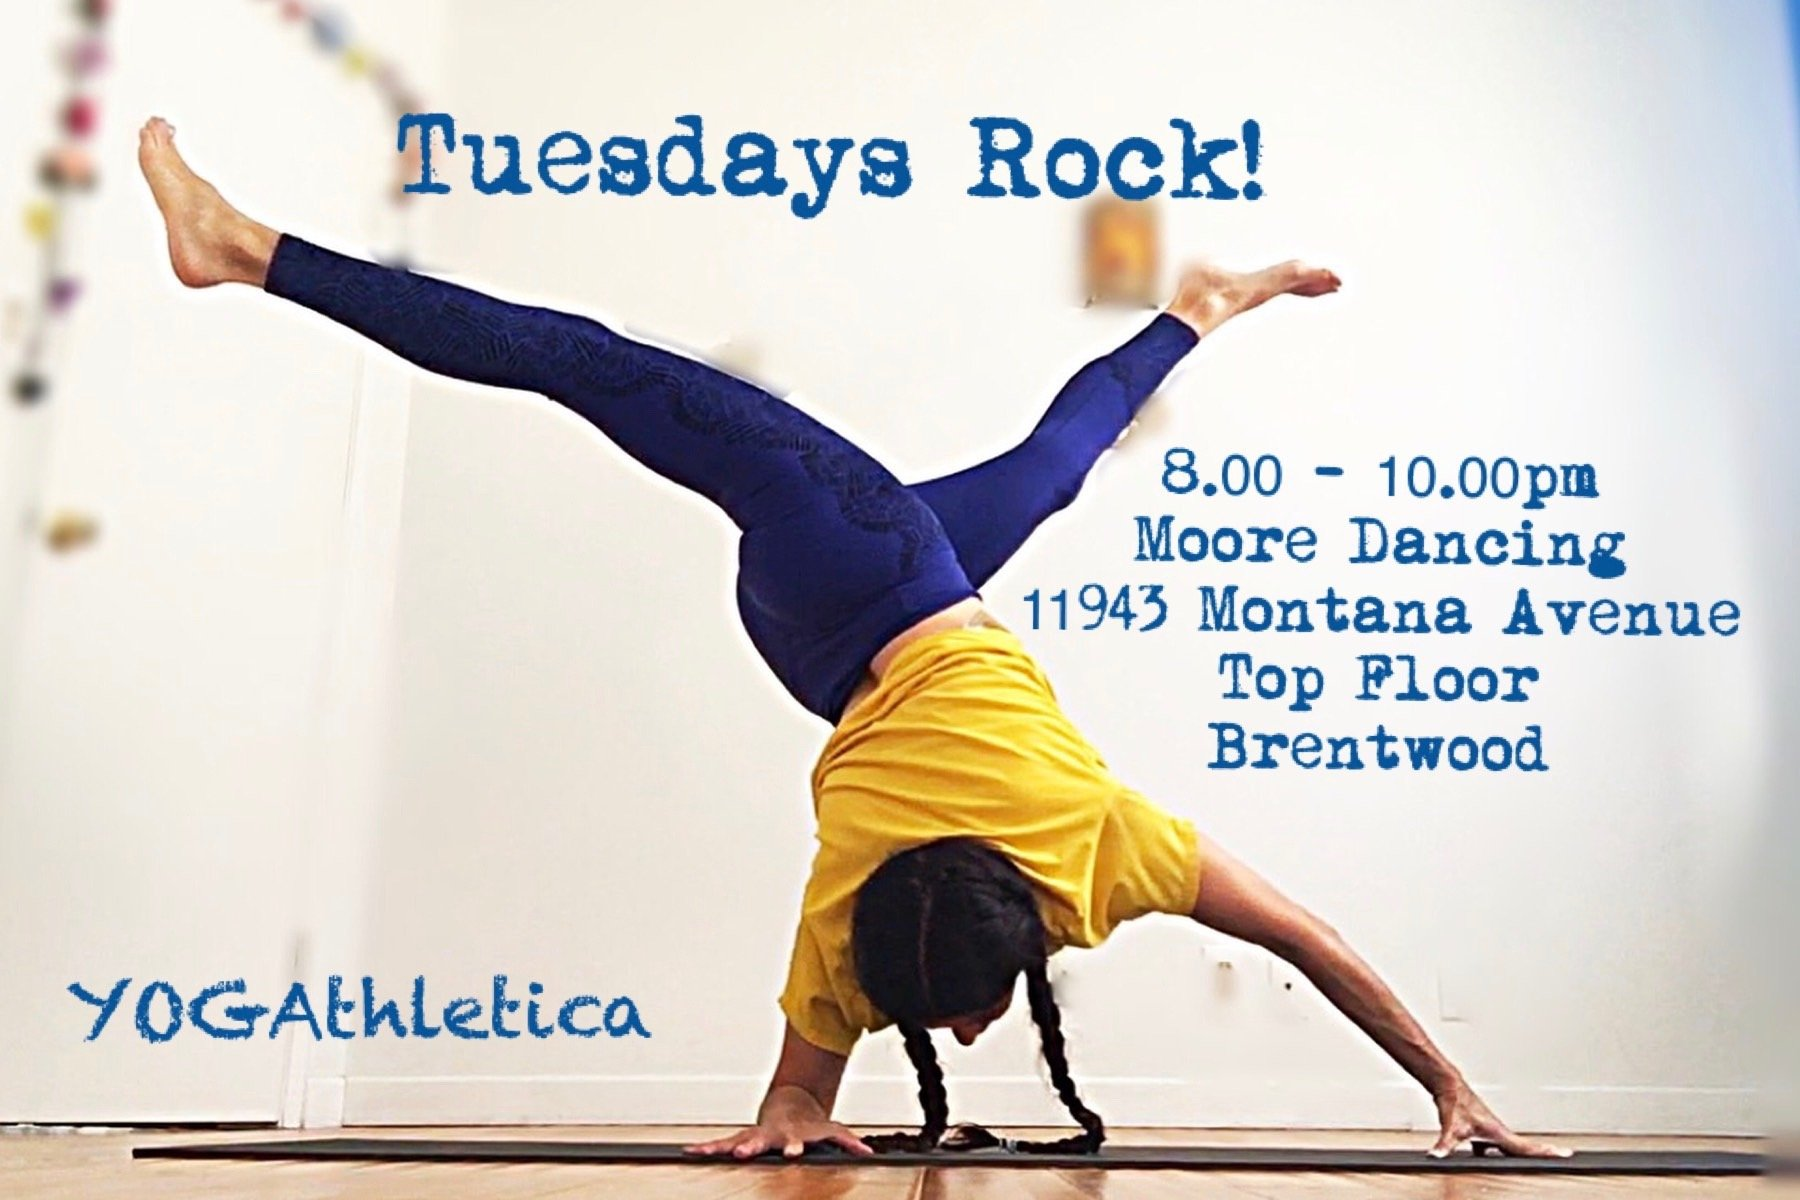 yogathletica tuesday nights at 8pm at moore dancing in brentwood